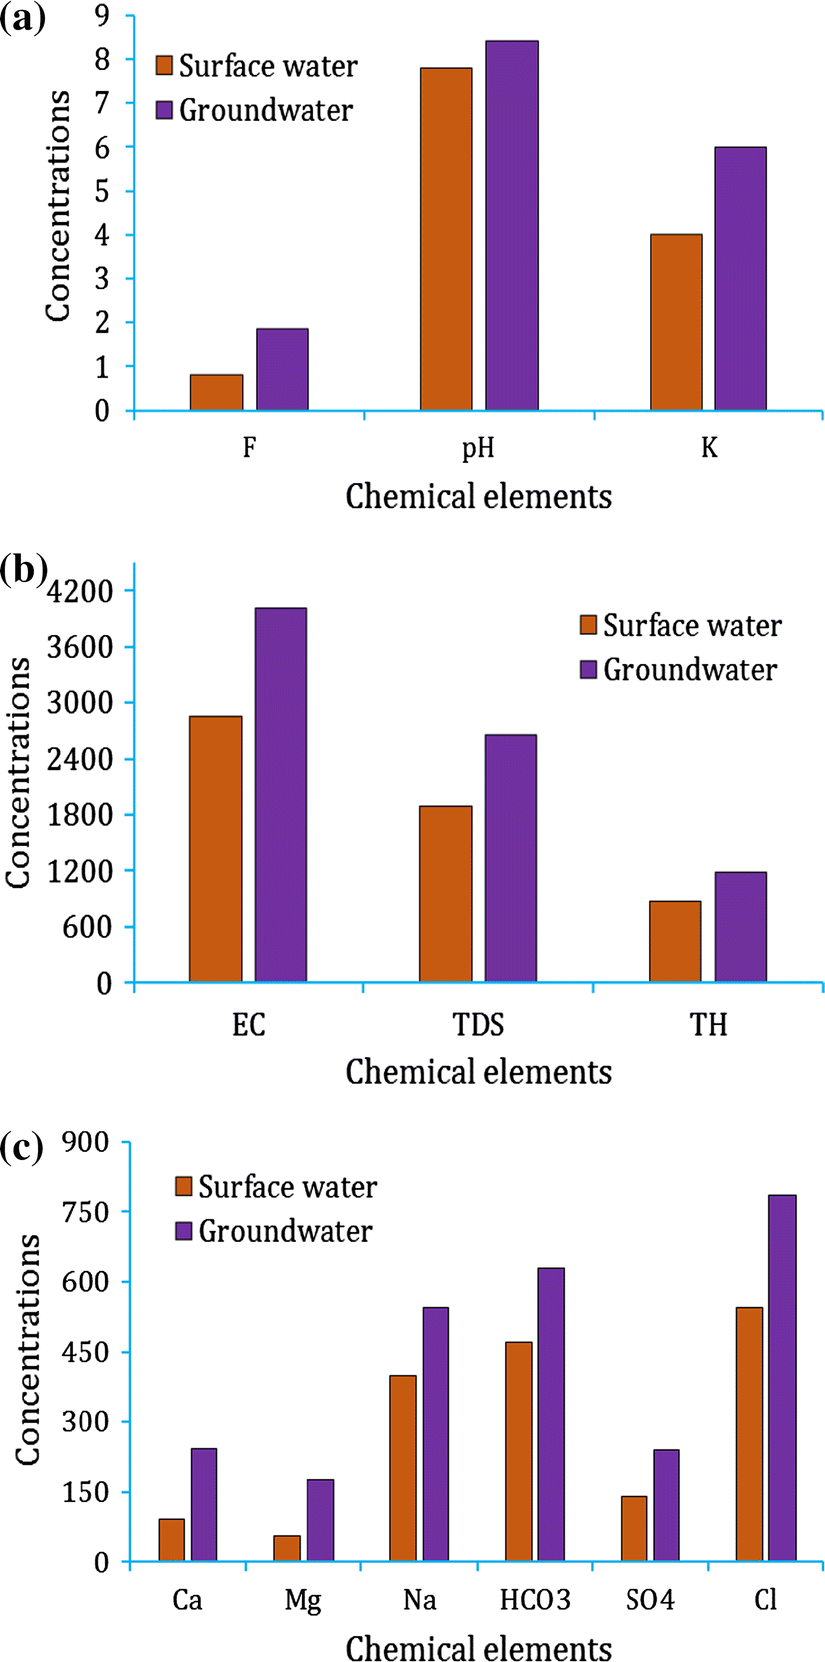 Hydrogeochemical characterization and assessment of water